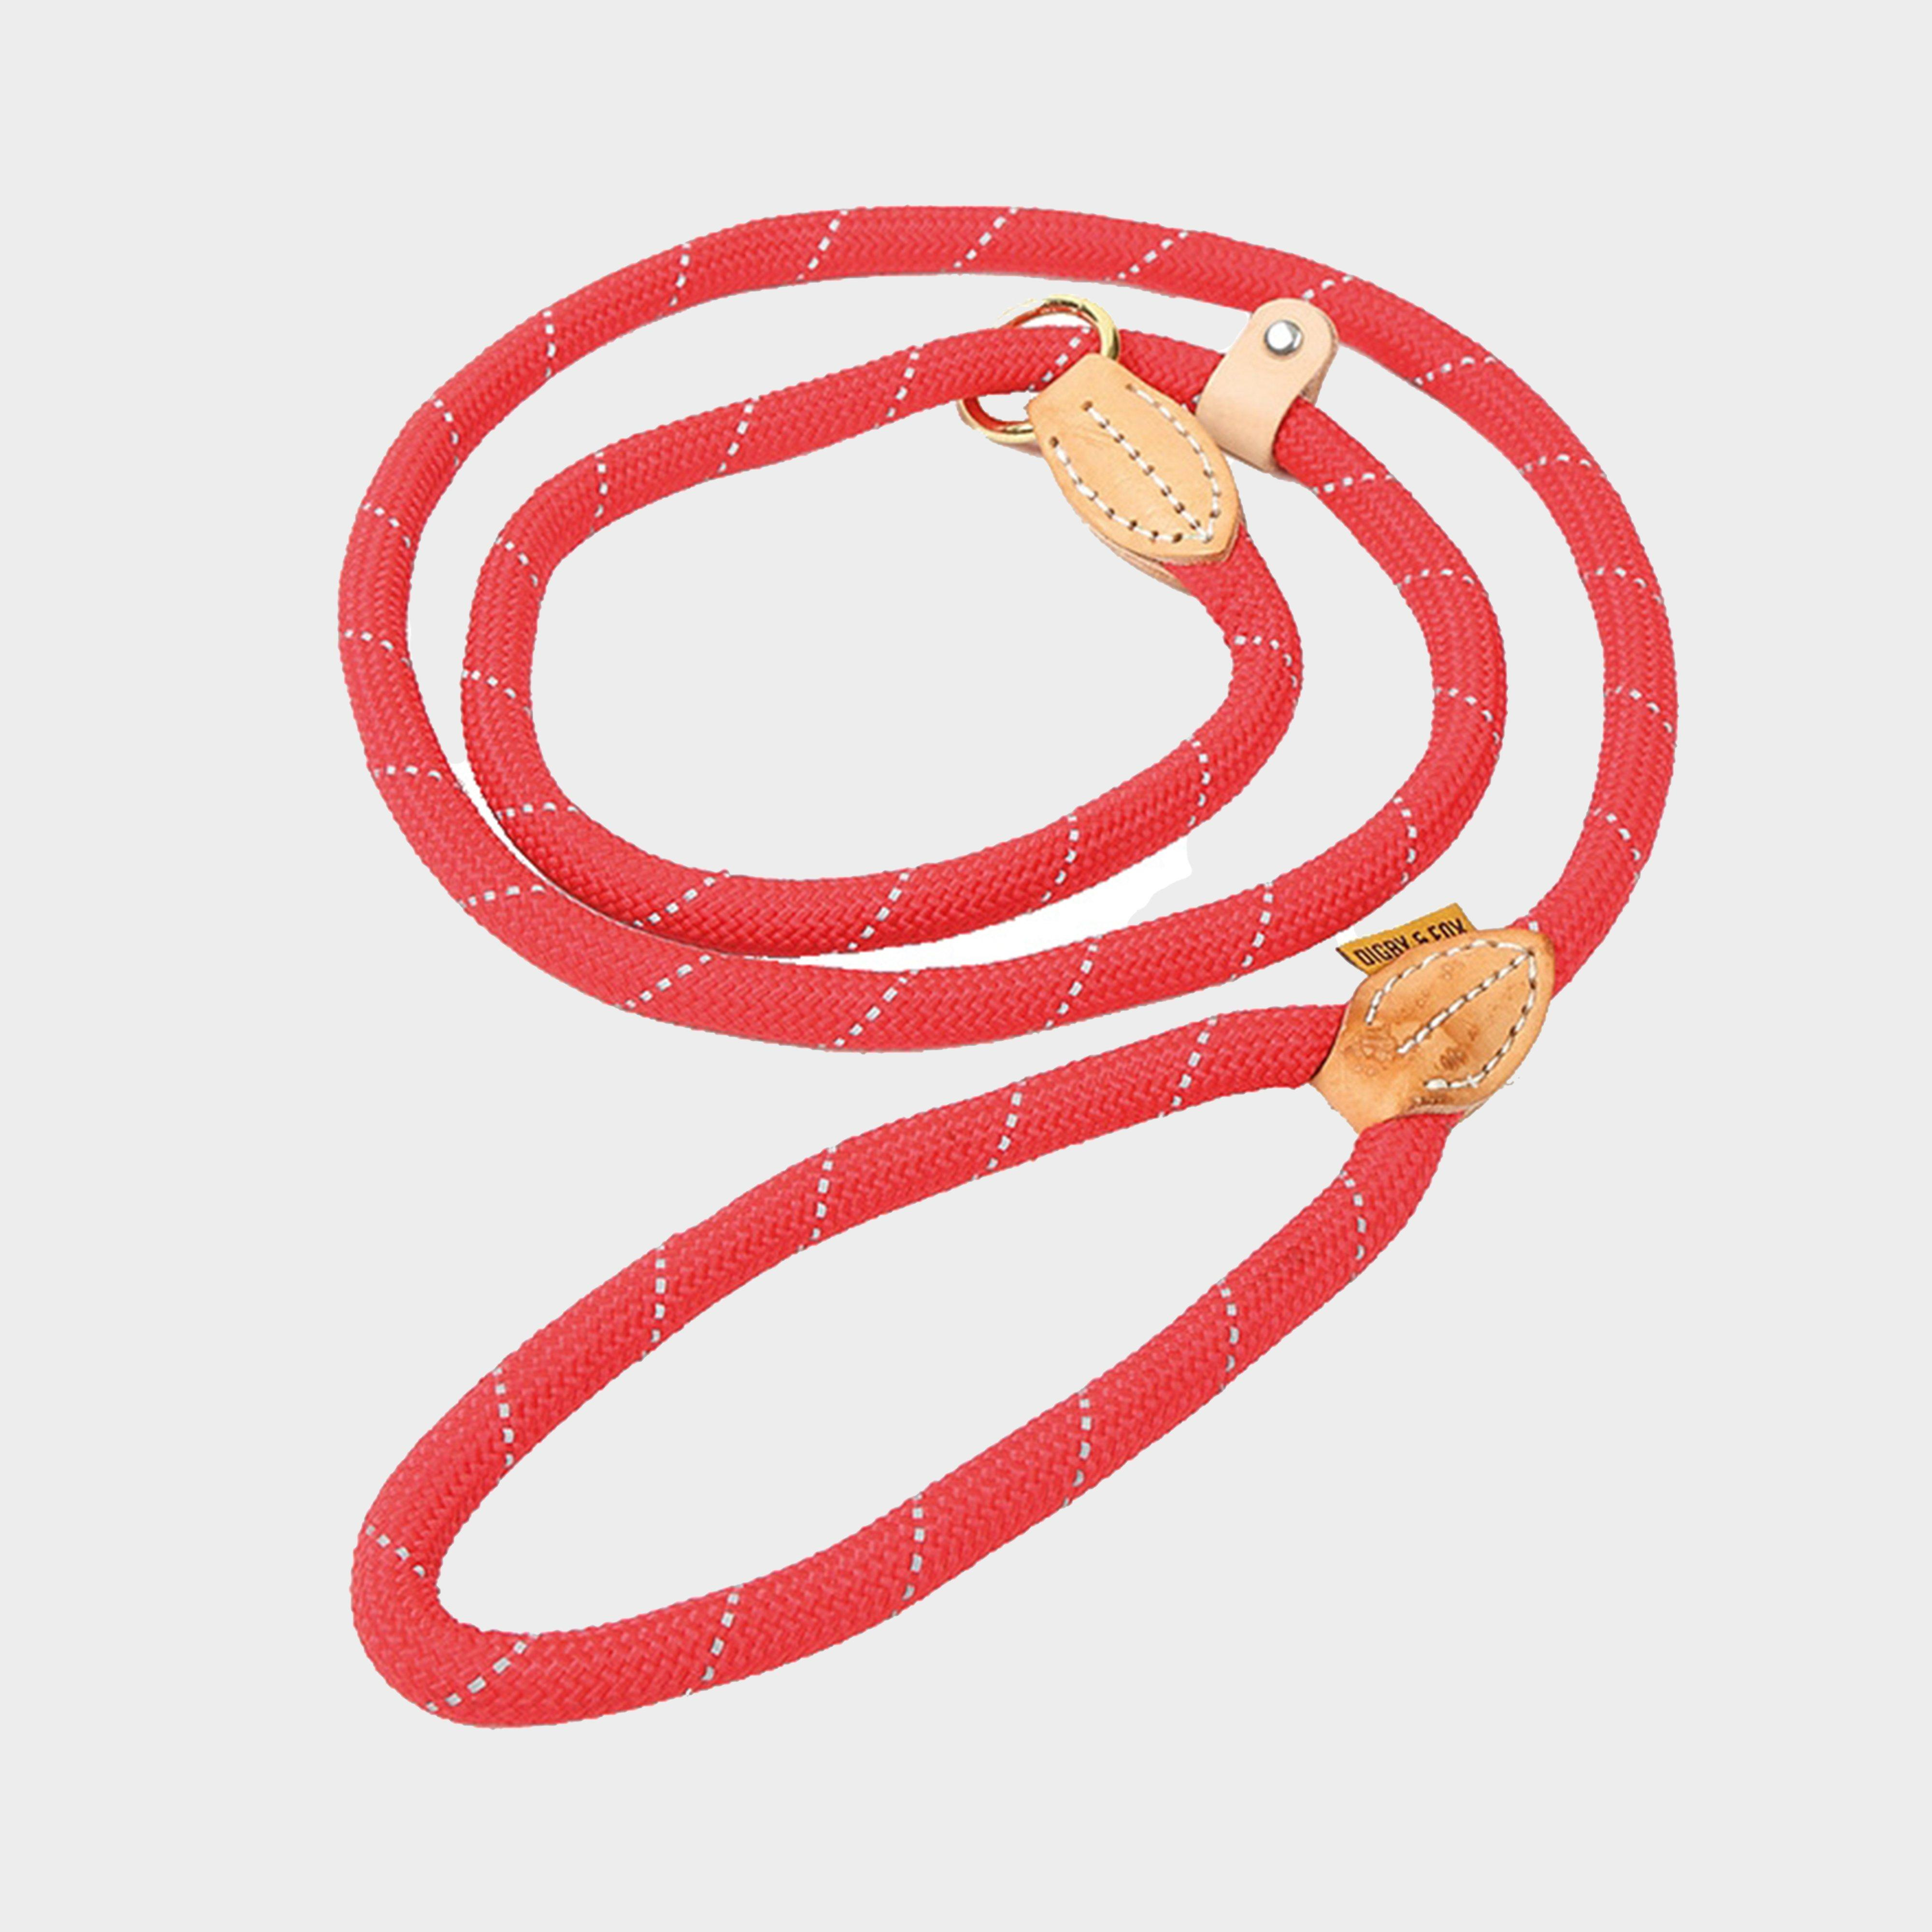 Image of Shires Digby & Fox Reflective Slip Dog Lead - Red/Red, RED/RED